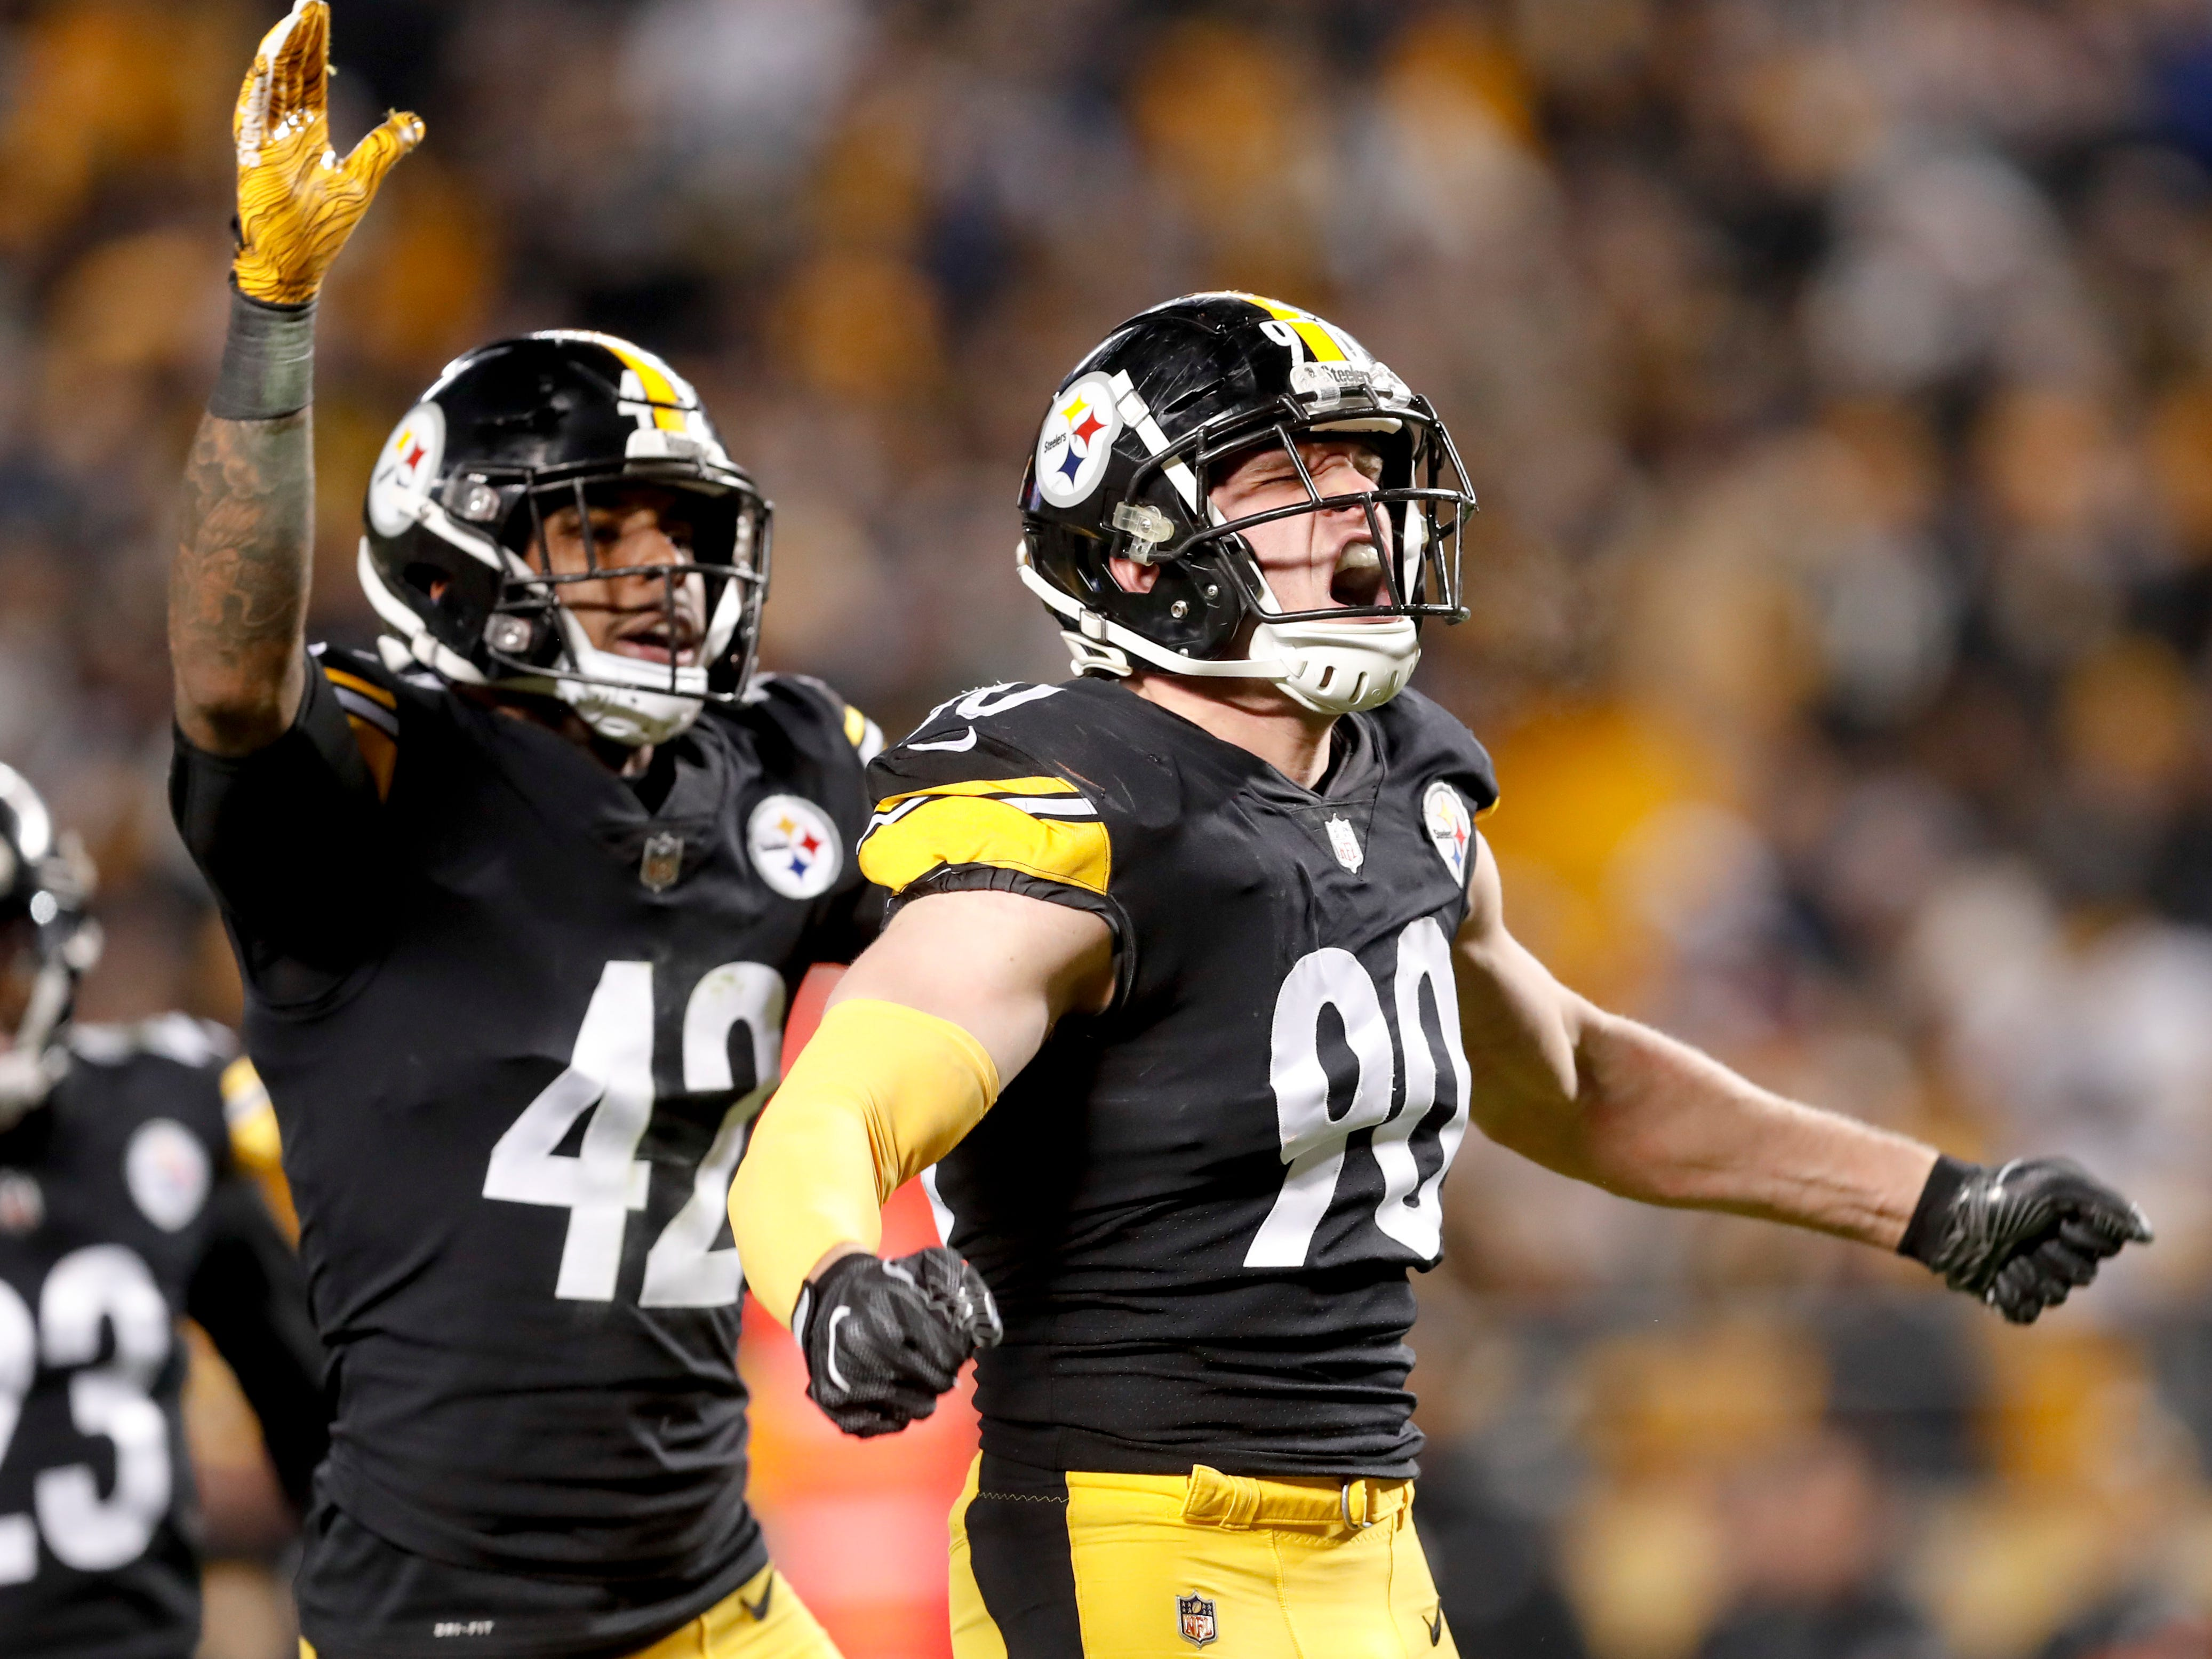 Pittsburgh Steelers outside linebacker T.J. Watt (90) celebrates a defensive play against the Cincinnati Bengals in the third quarter of a Week 17 game against the Cincinnati Bengals, Sunday, Dec. 30, 2018, in Pittsburgh. Watt had seven tackles, 1 sack and 1 tackle for a loss.